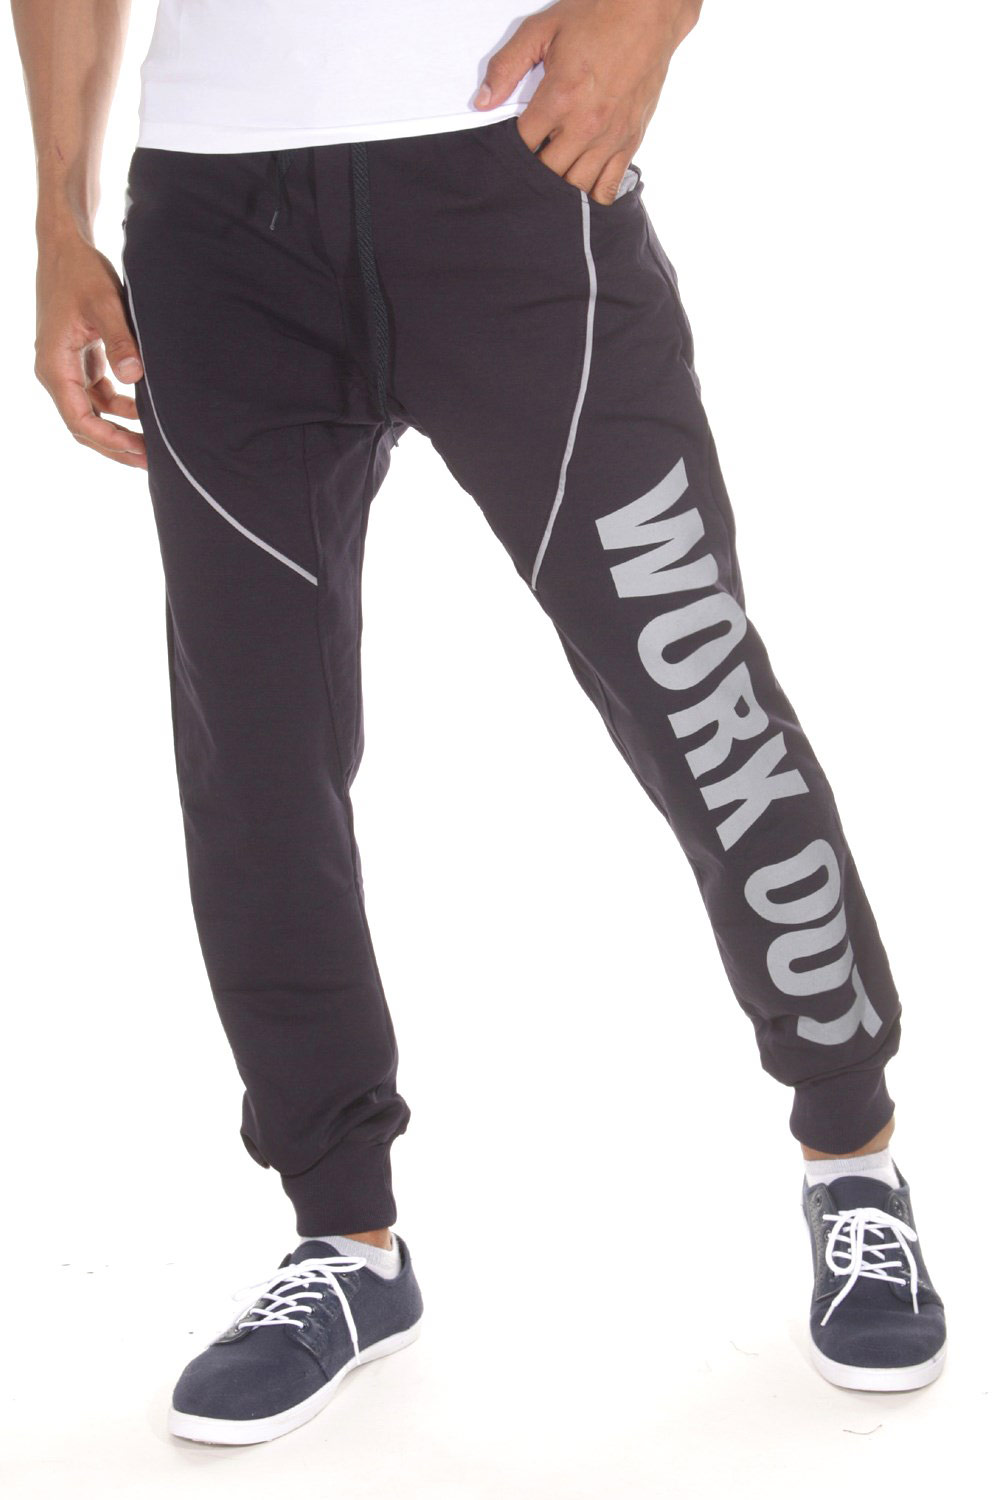 FIOCEO Workout Pants auf oboy.de